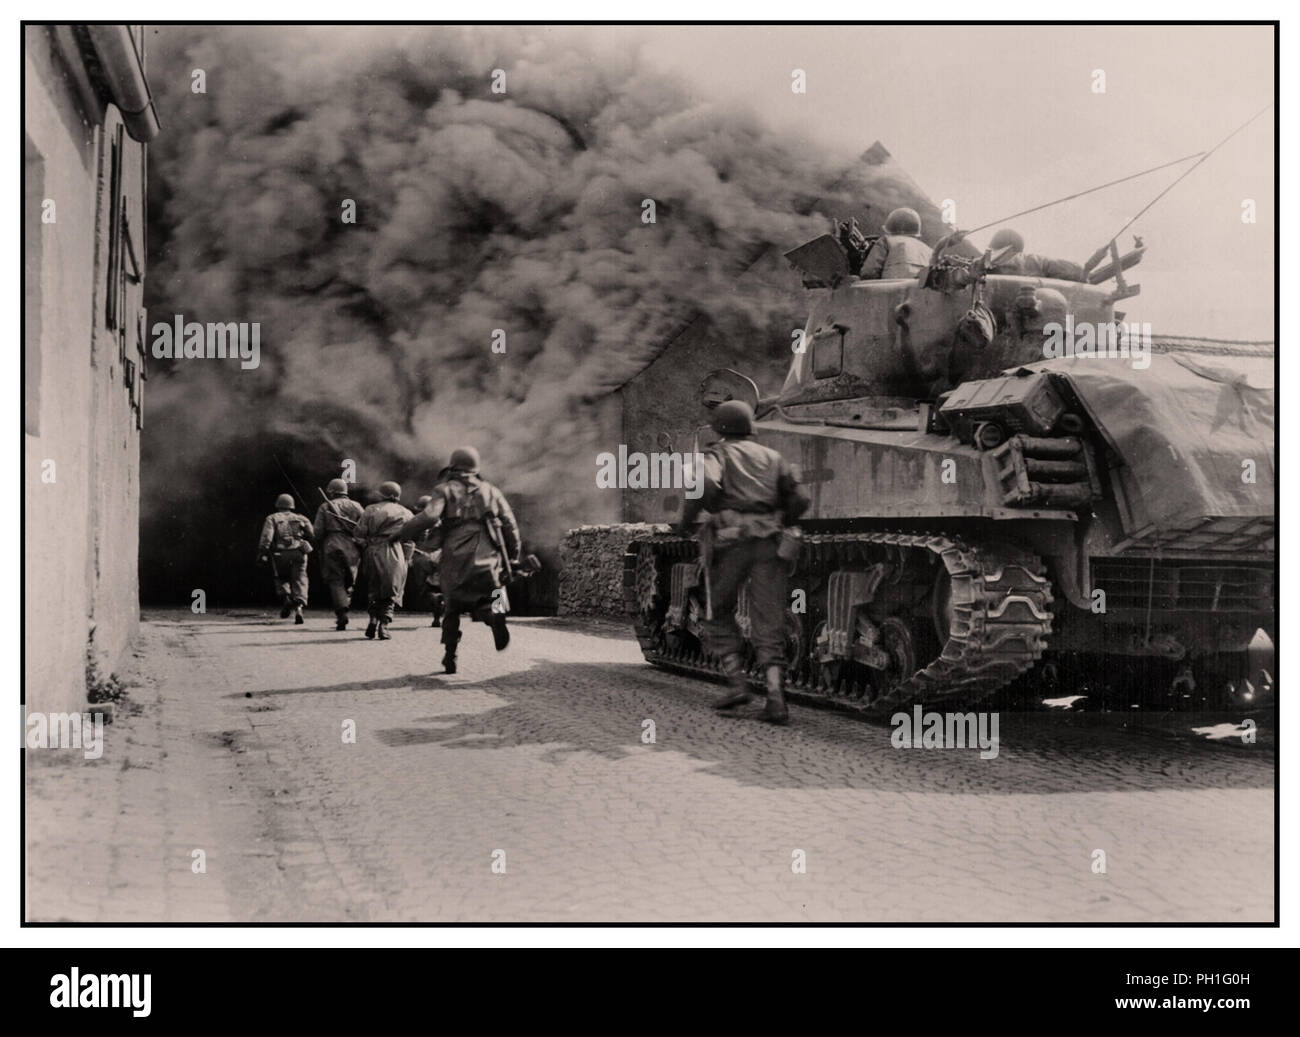 WW2 GI Soldiers of the 55th Armored Infantry Battalion Third Army and M4 Sherman tank of the 22nd Tank Battalion, advance move through smoke filled street. Wernberg, Germany. April 22, 1945 - Stock Image